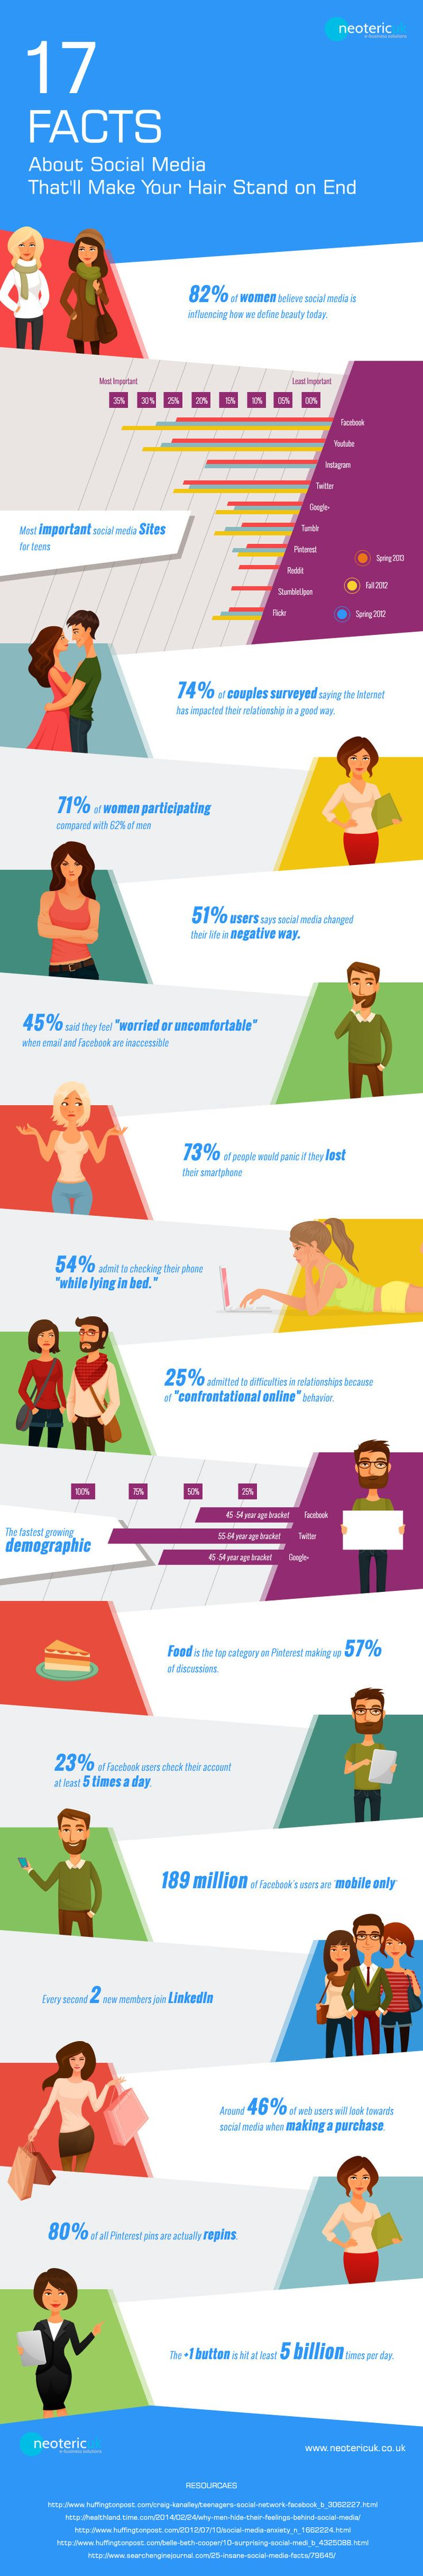 #SocialMedia Stats That'll Make Your Hair Stand on End! - #infographic #SMM